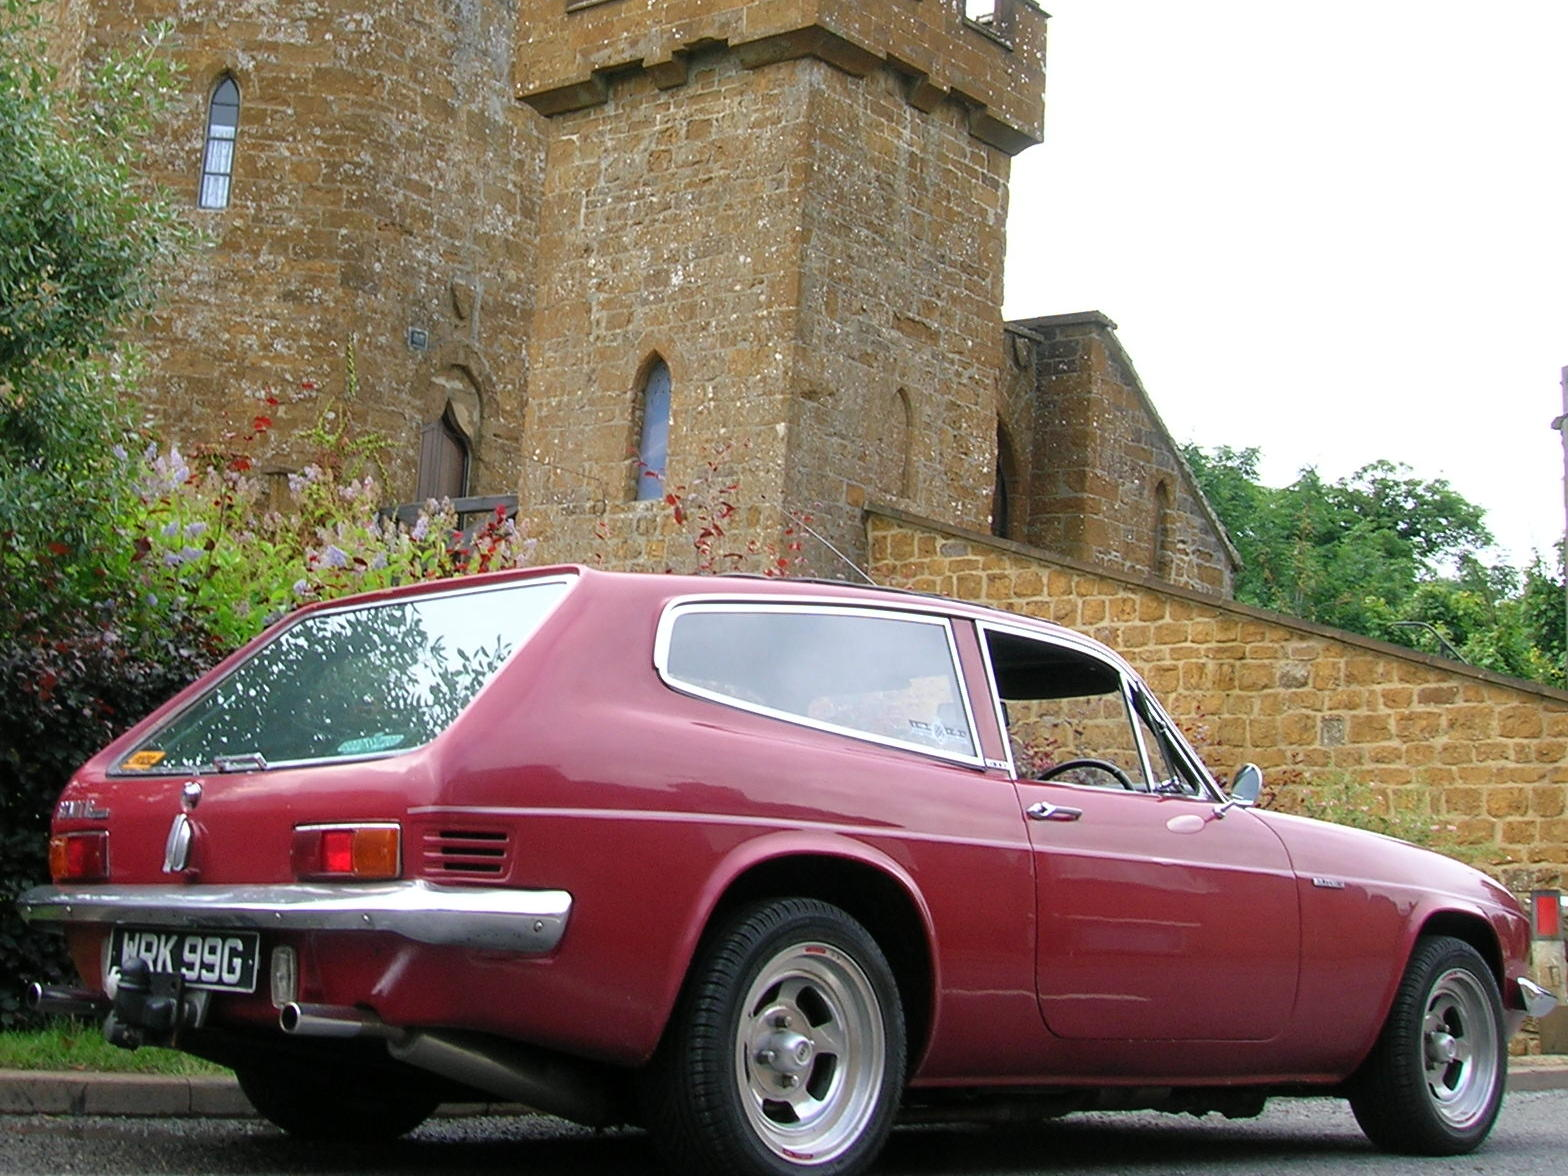 1969 Reliant Scimitar GTE - Pictures - Picture of 1969 Reliant ...